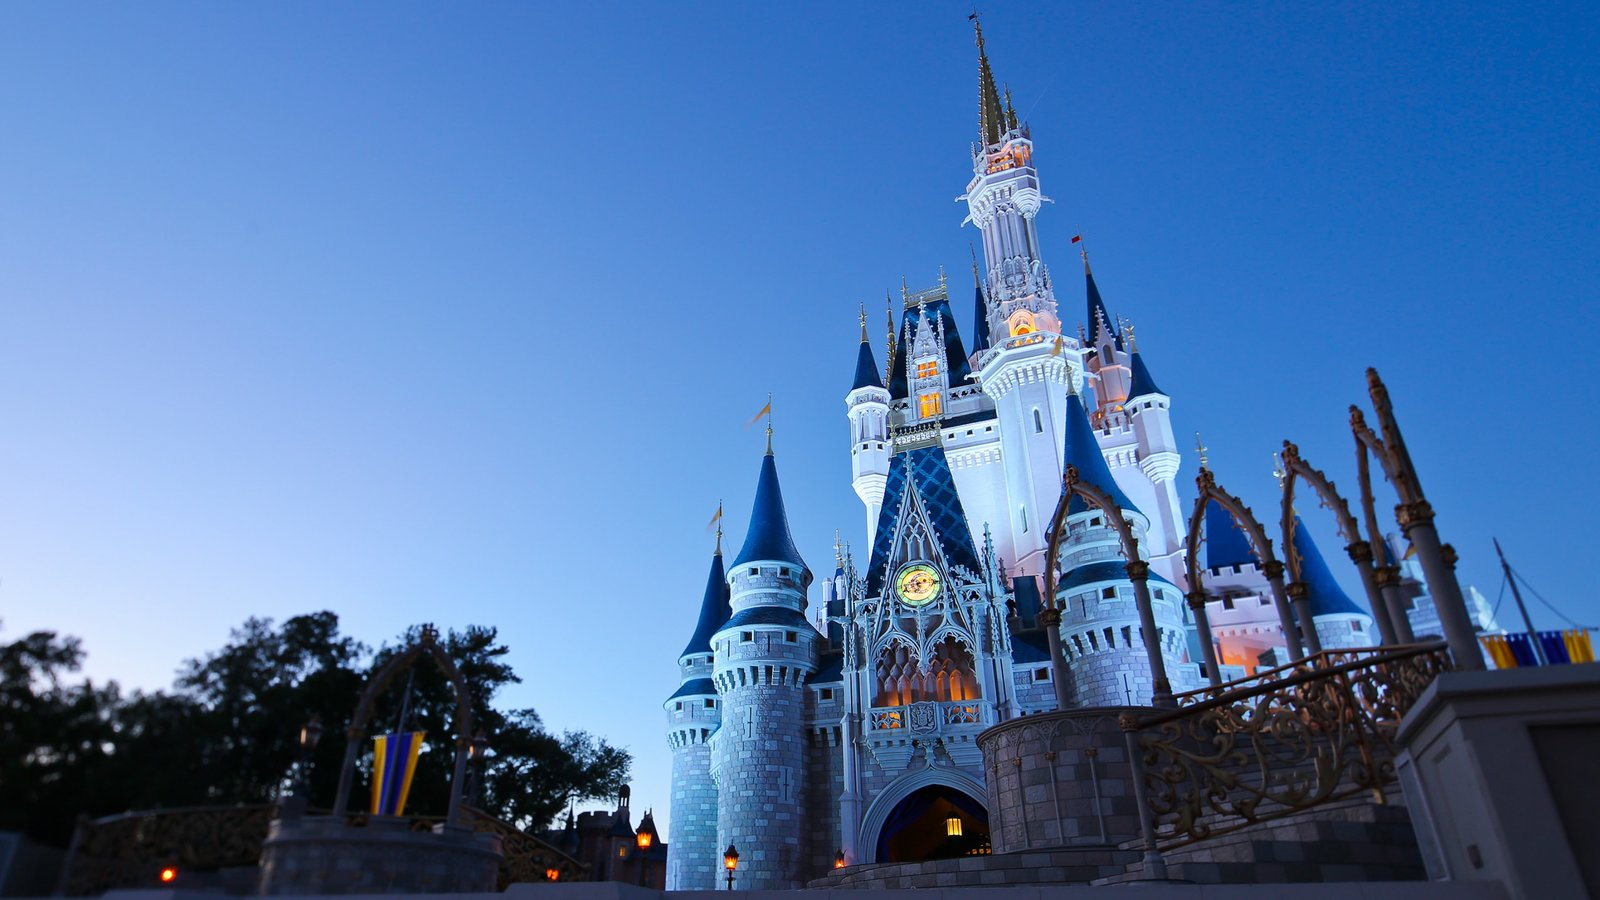 Walt Disney World showing rides, night scenes and a castle